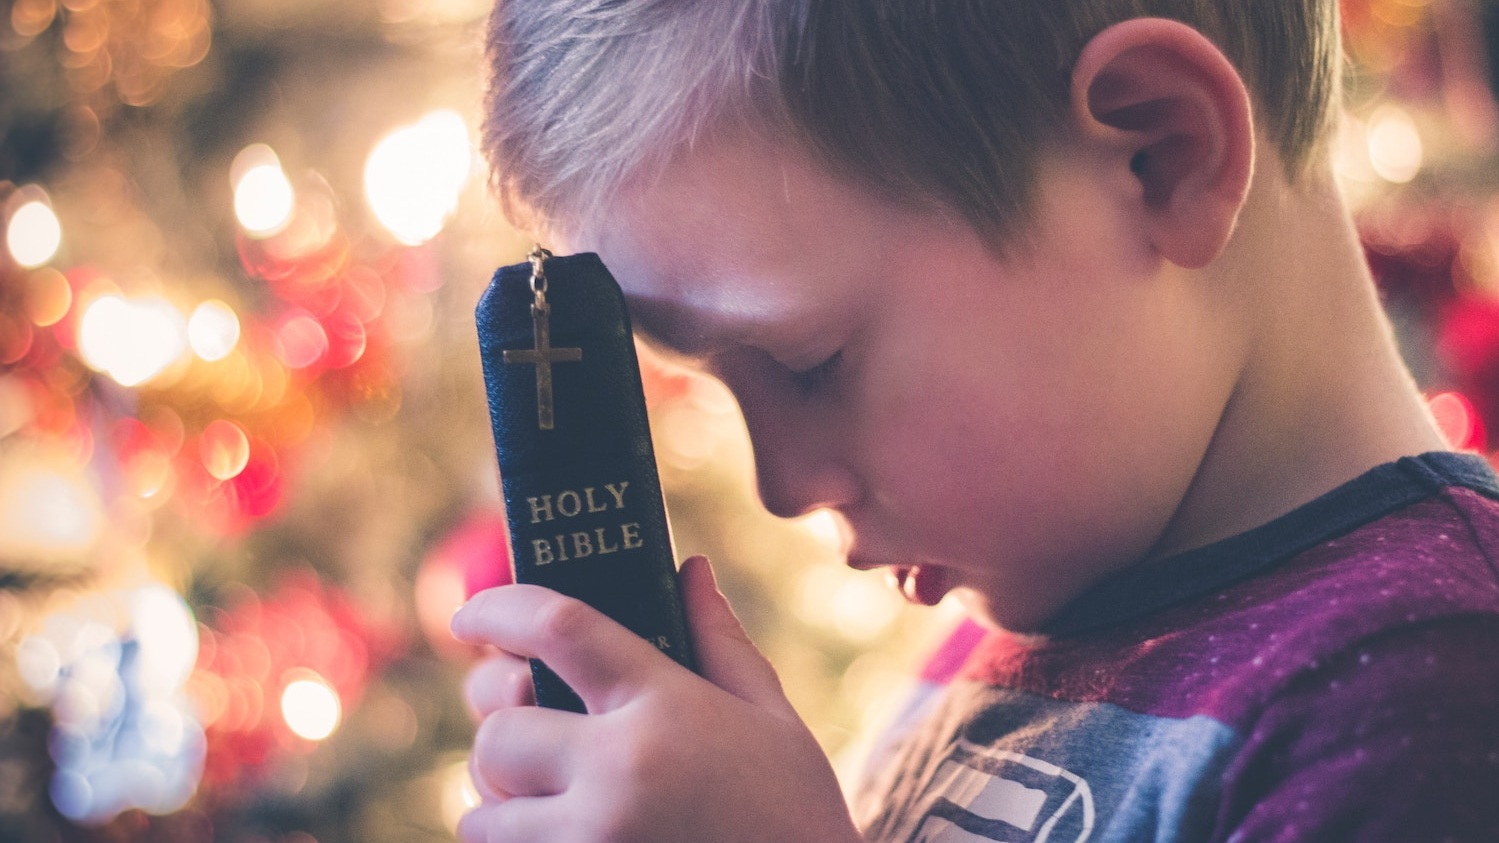 Child holding a Holy Bible and praying